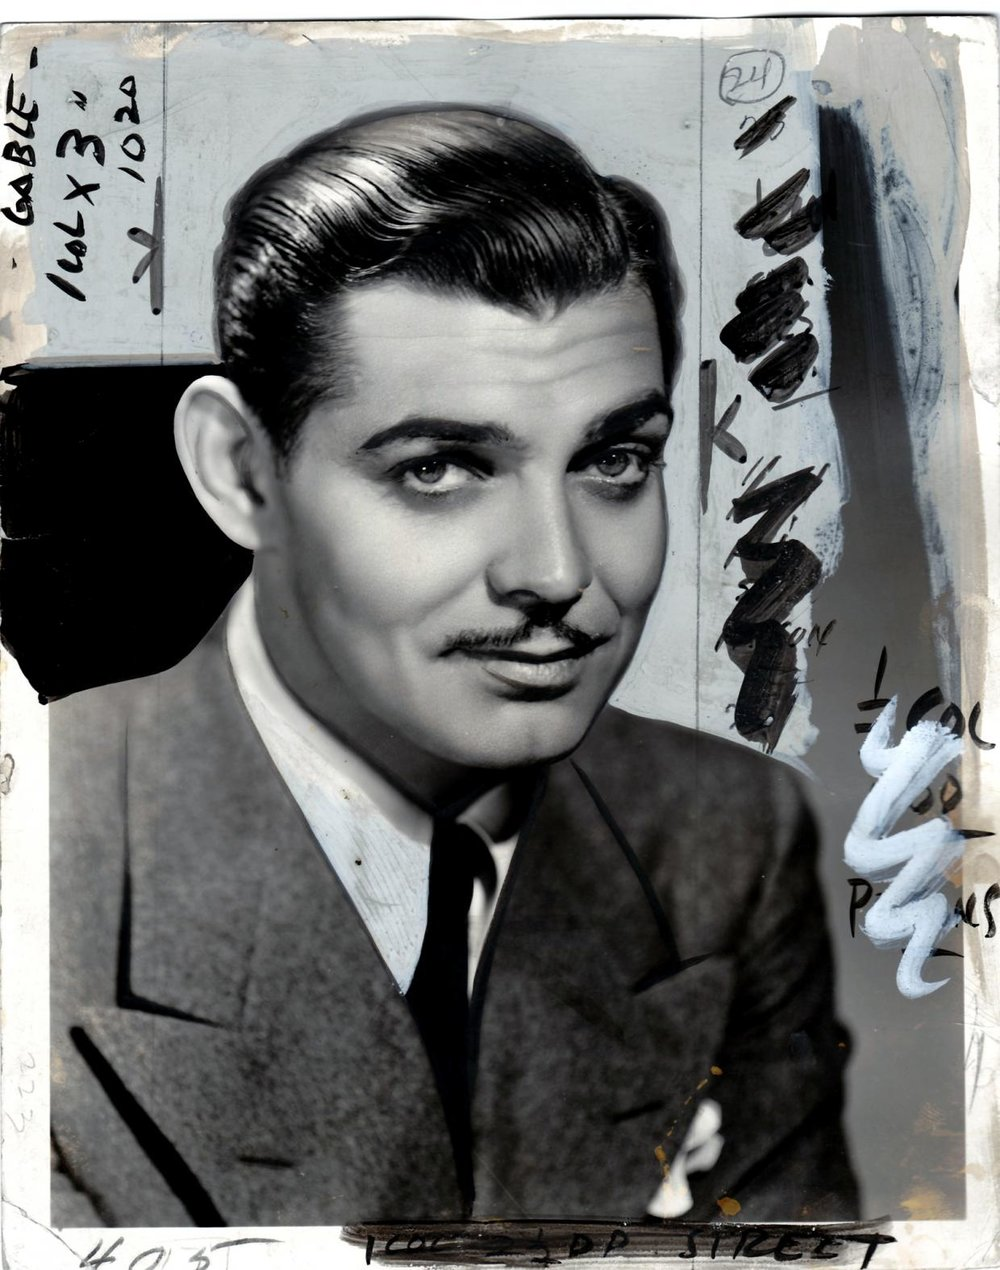 'Airbrushed' Clark Gable 1932-33 from  La Fabrique Des Icone s, the Paris exhibition of hand-retouched Hollywood photos 1910-1970. April 2105, the Galerie Argentic. Source:  www.argentic-photo.com .